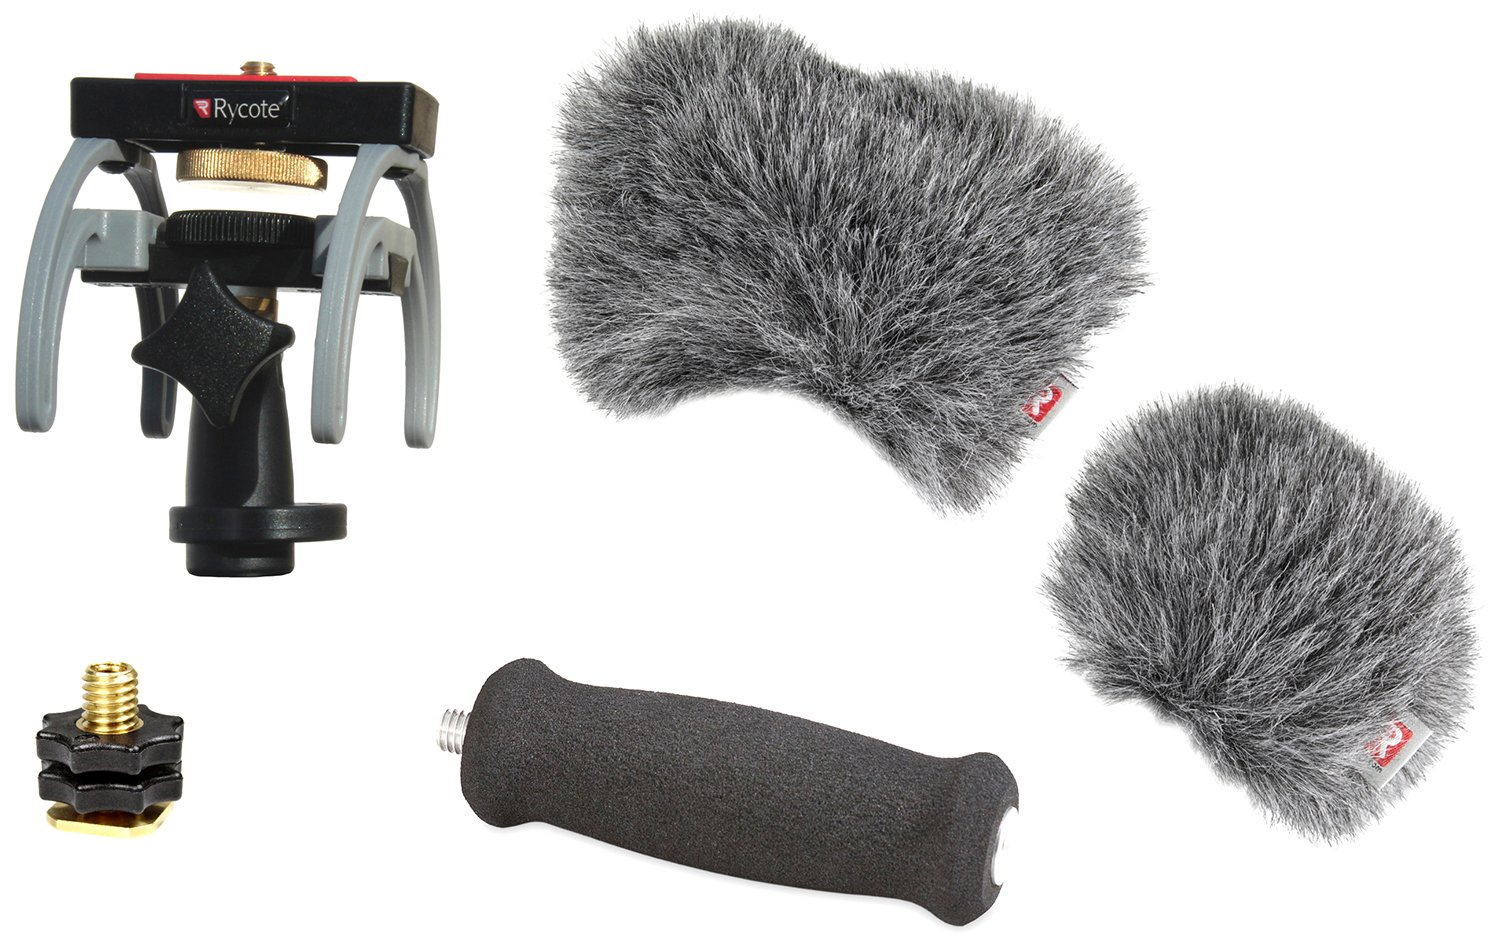 Rycote Portable Recorder Audio Kit for Zoom H6 Digital Recorder, Includes Suspension Mount, Mini Windjammer, Extension Handle, Swivel Adapter